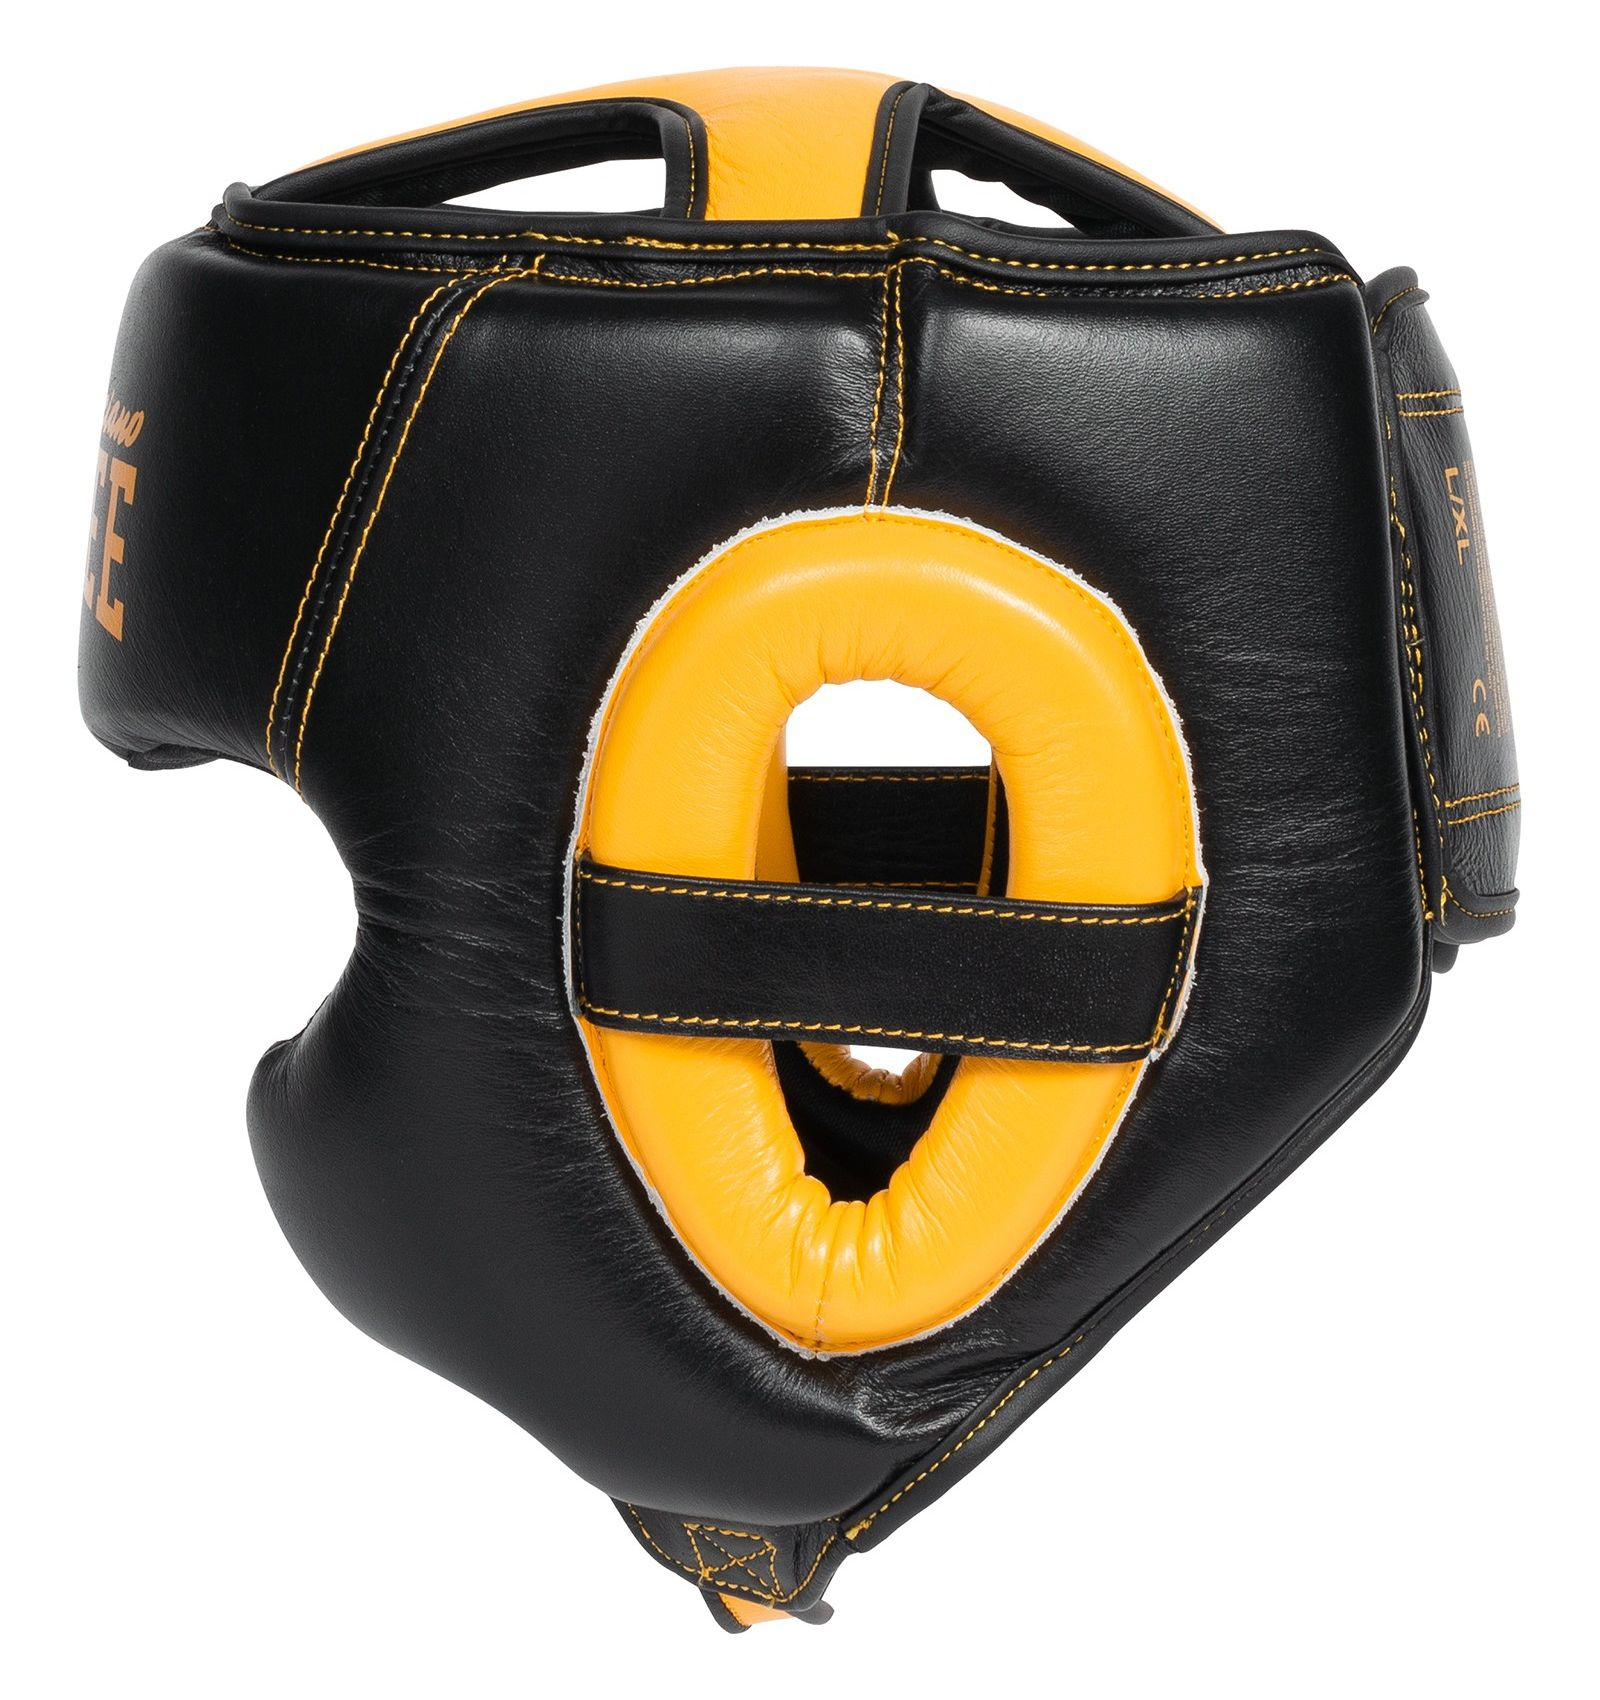 BenLee Leather Headguard Full Face Protection au meilleur